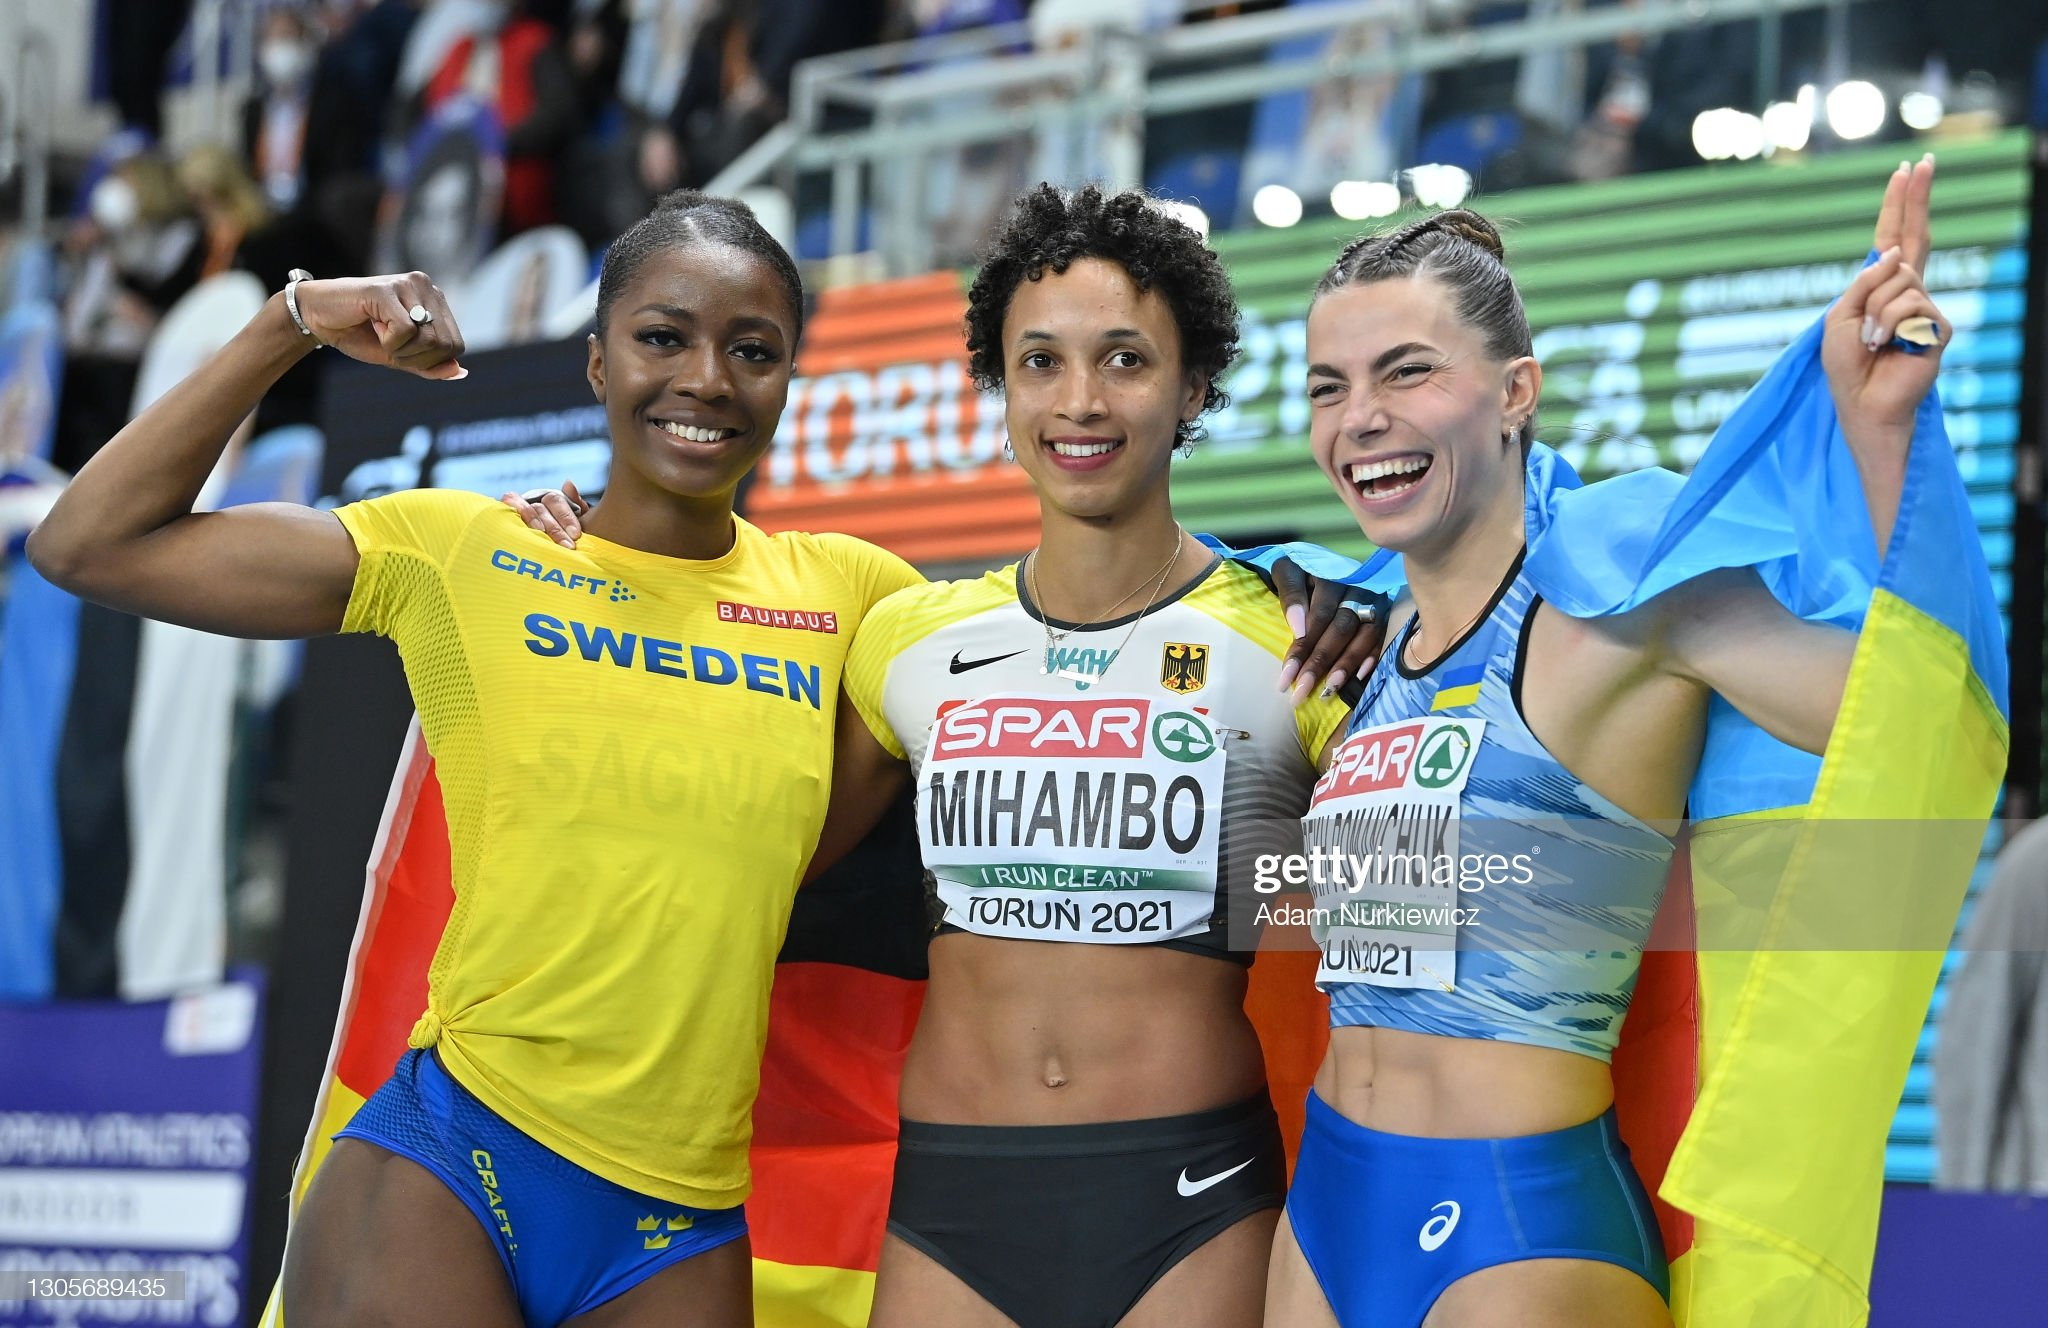 2021 European Athletics Indoor Championships - Day 2